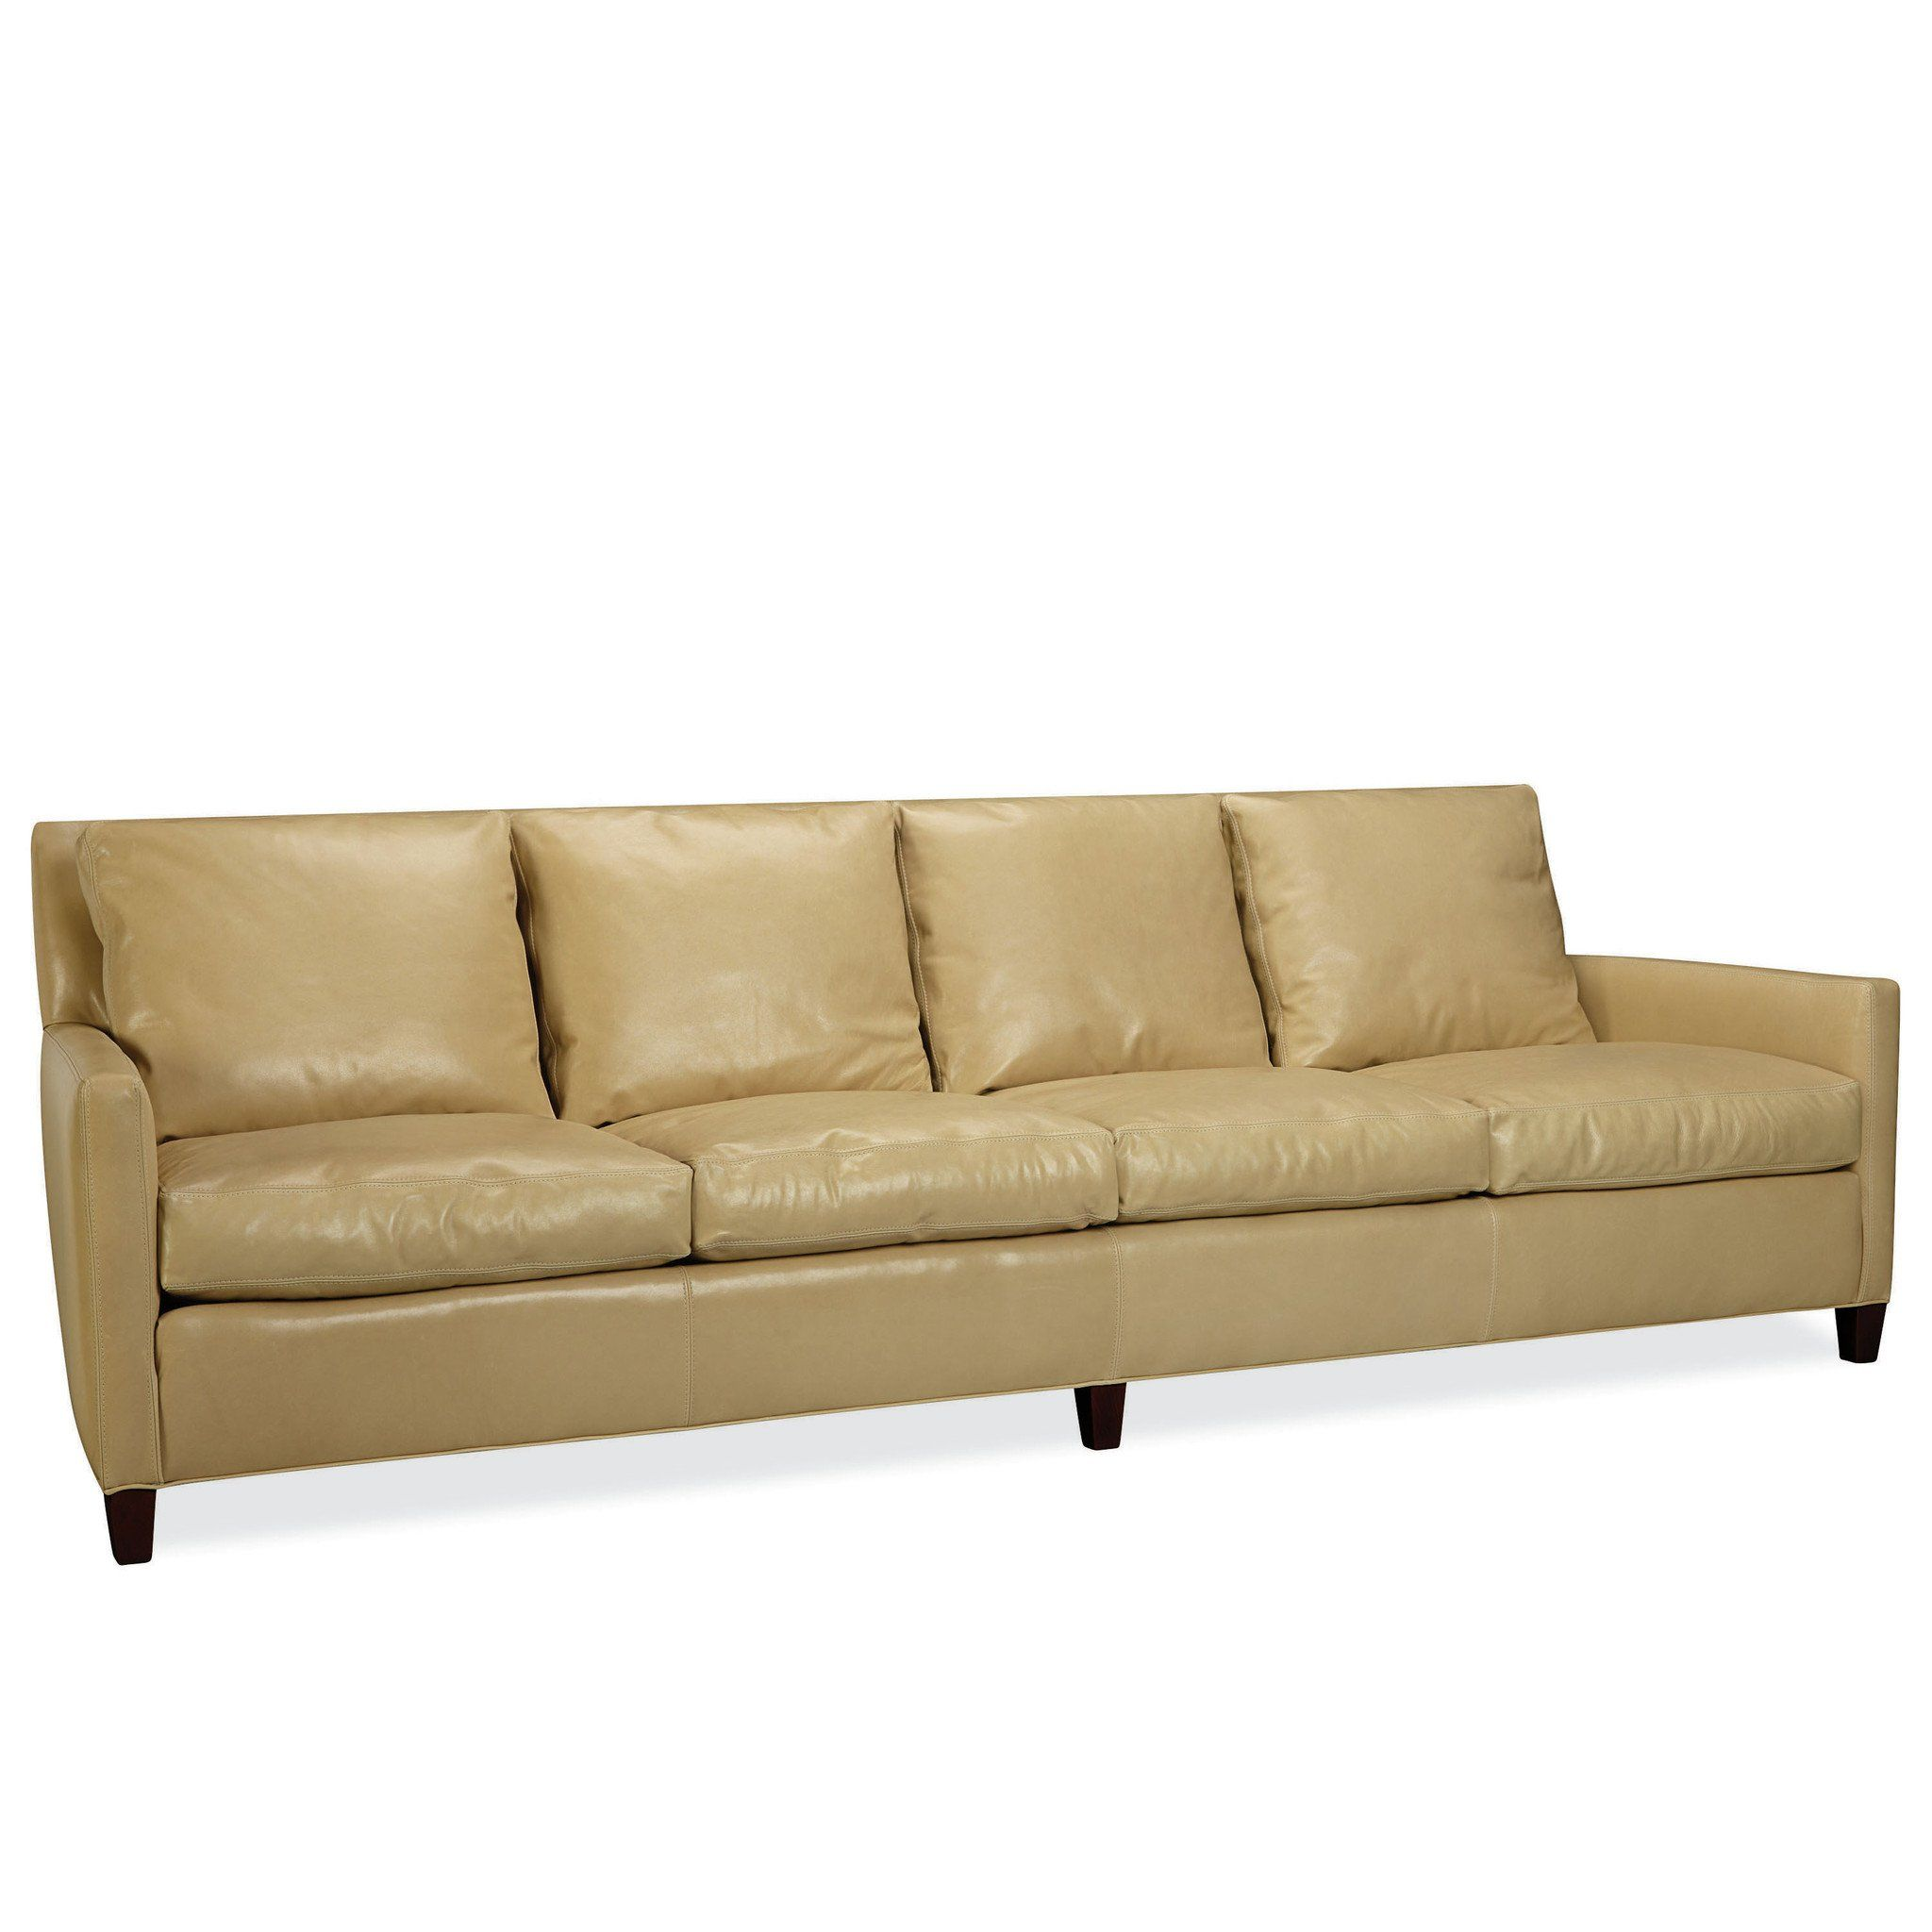 Delicieux Norwich Extra Long Leather Sofa